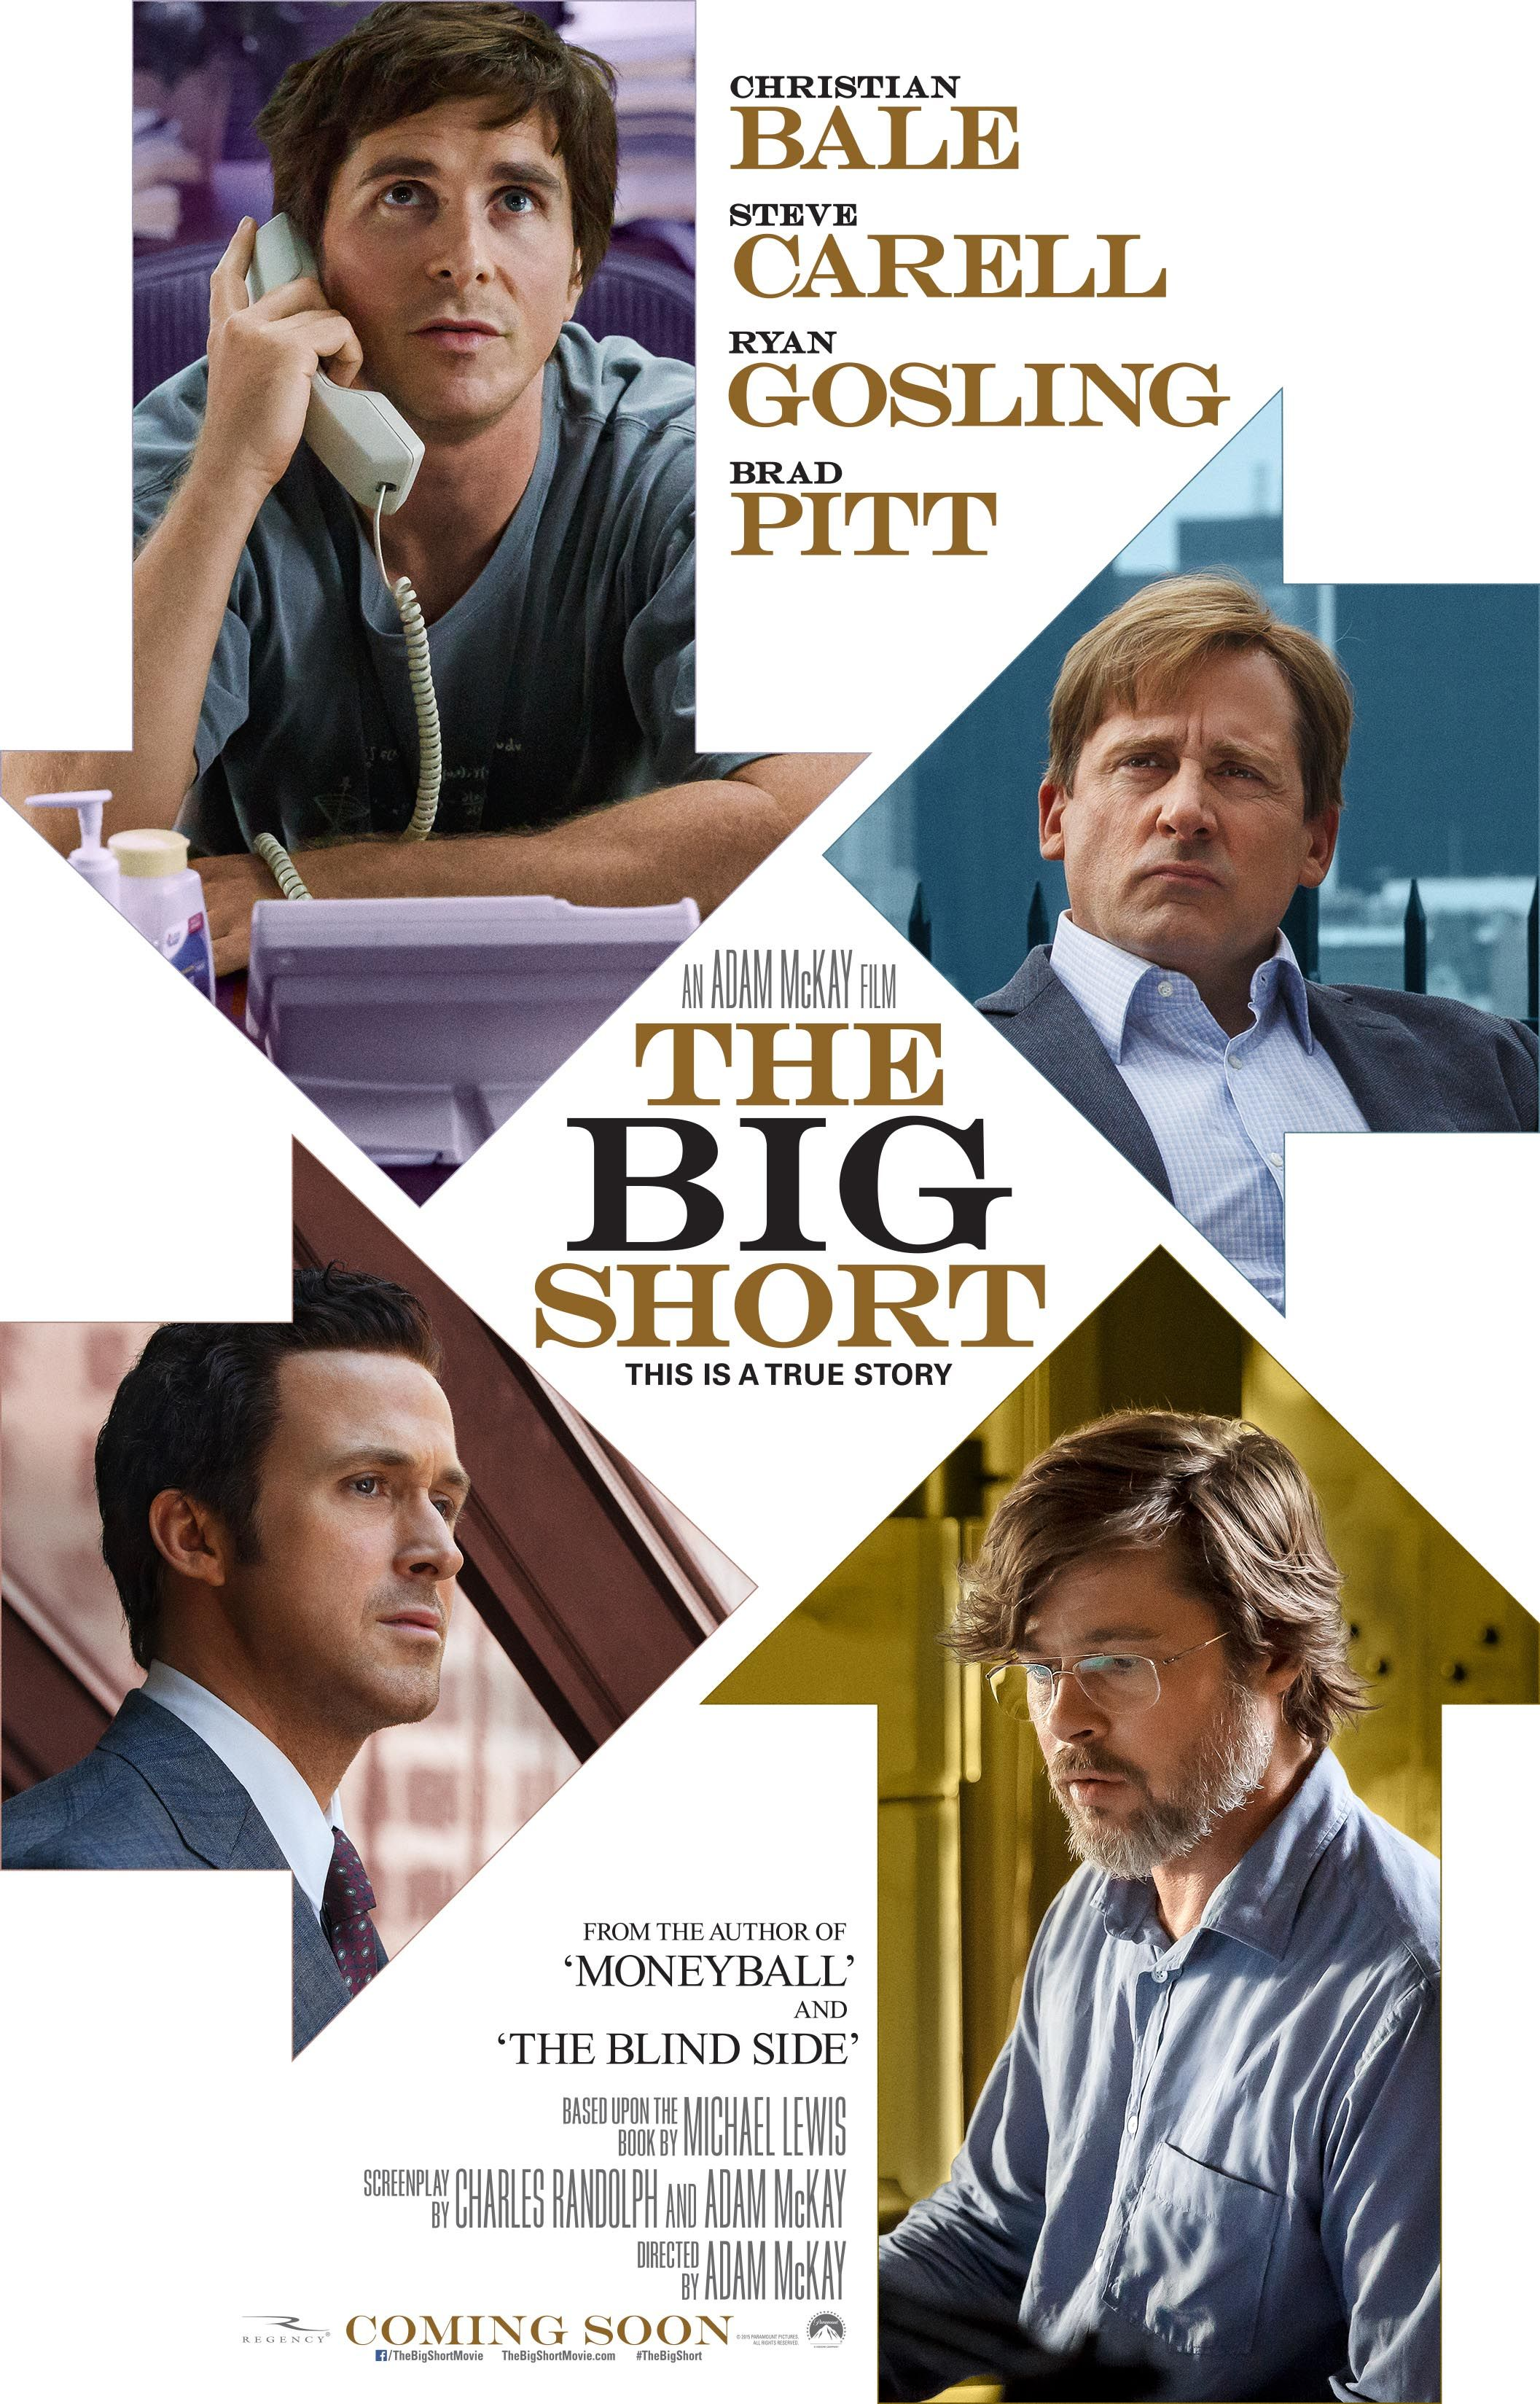 The Big Short gets a poster and a featurette. See them here